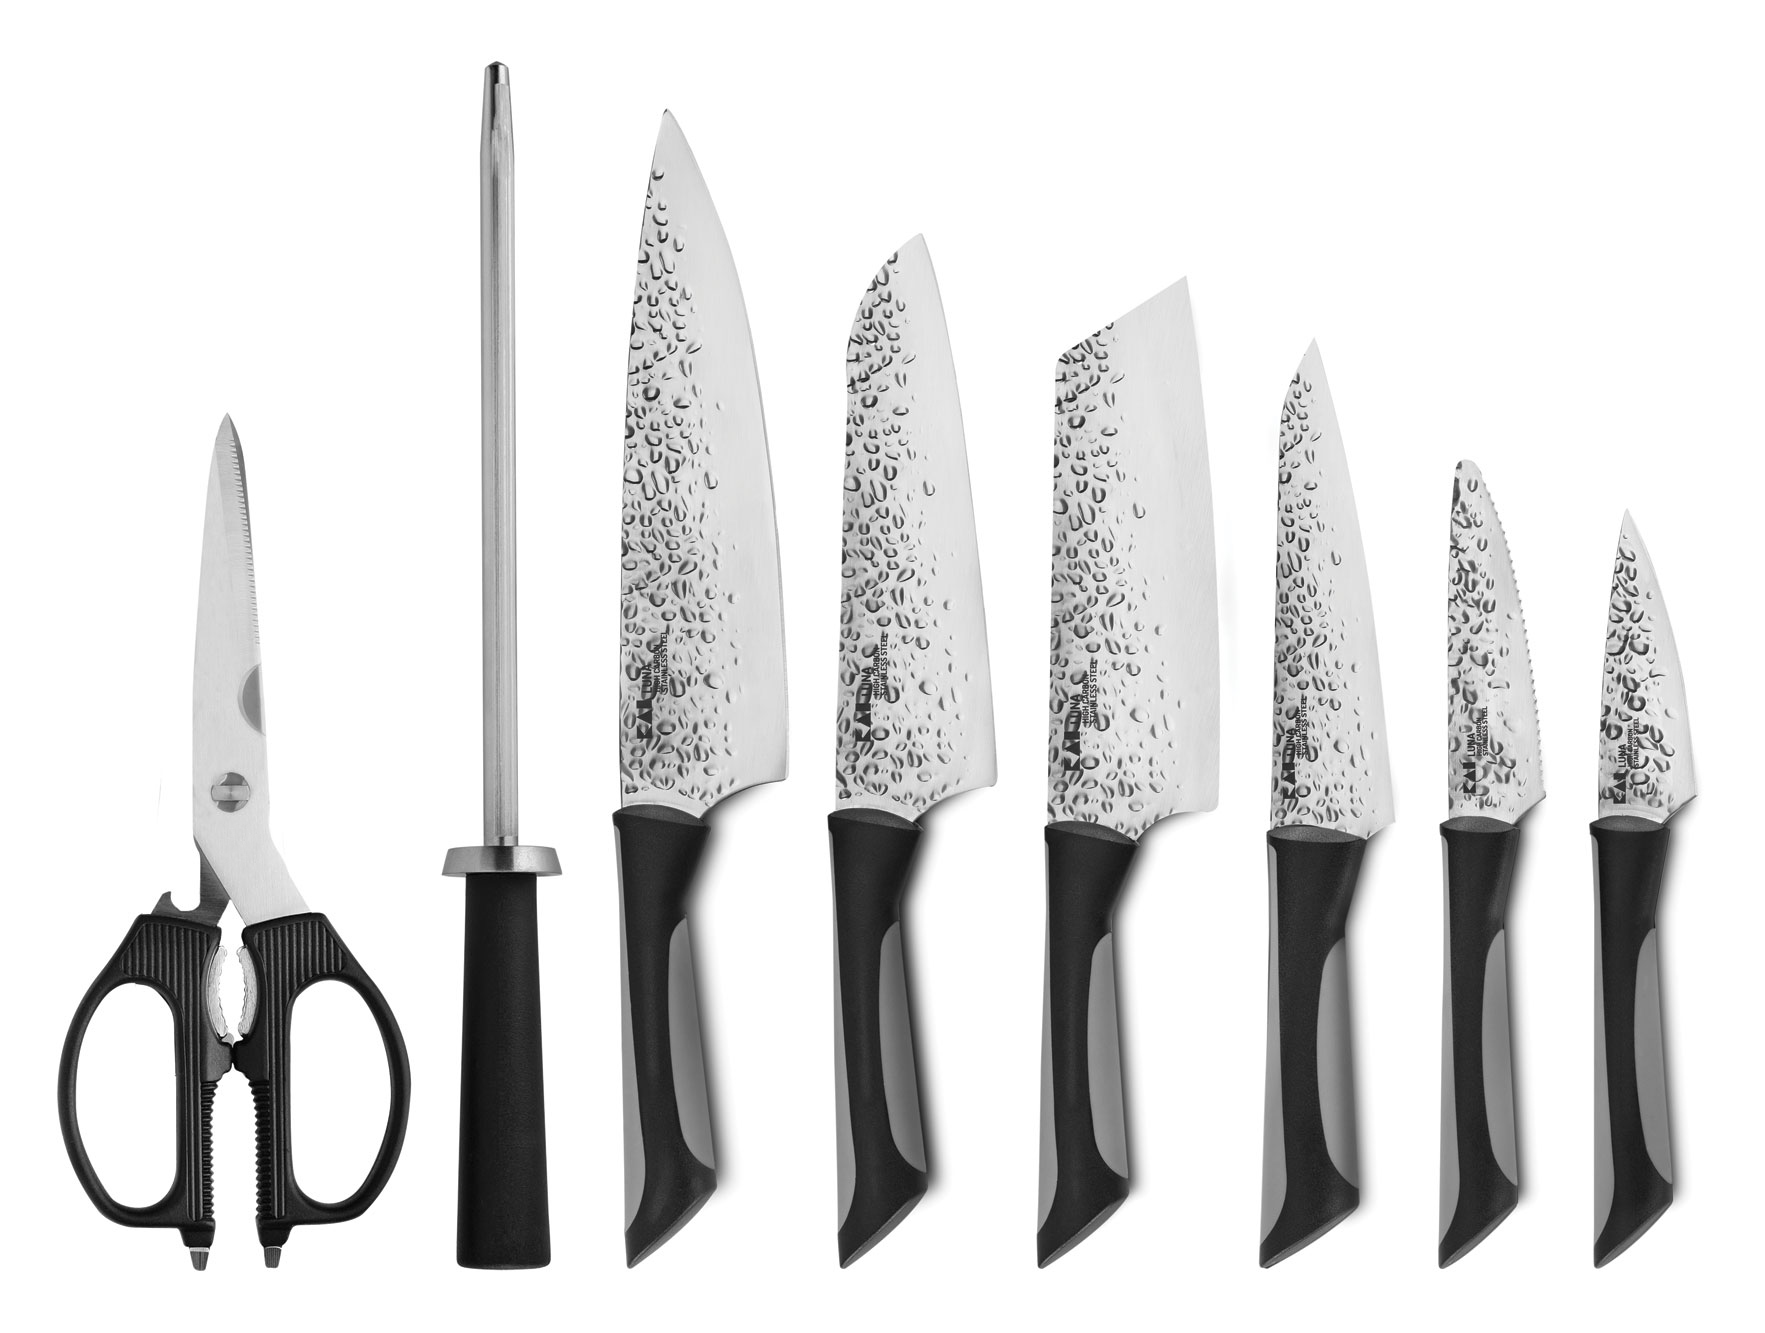 Kai Luna Knife Block Set 9 Piece Cutlery And More